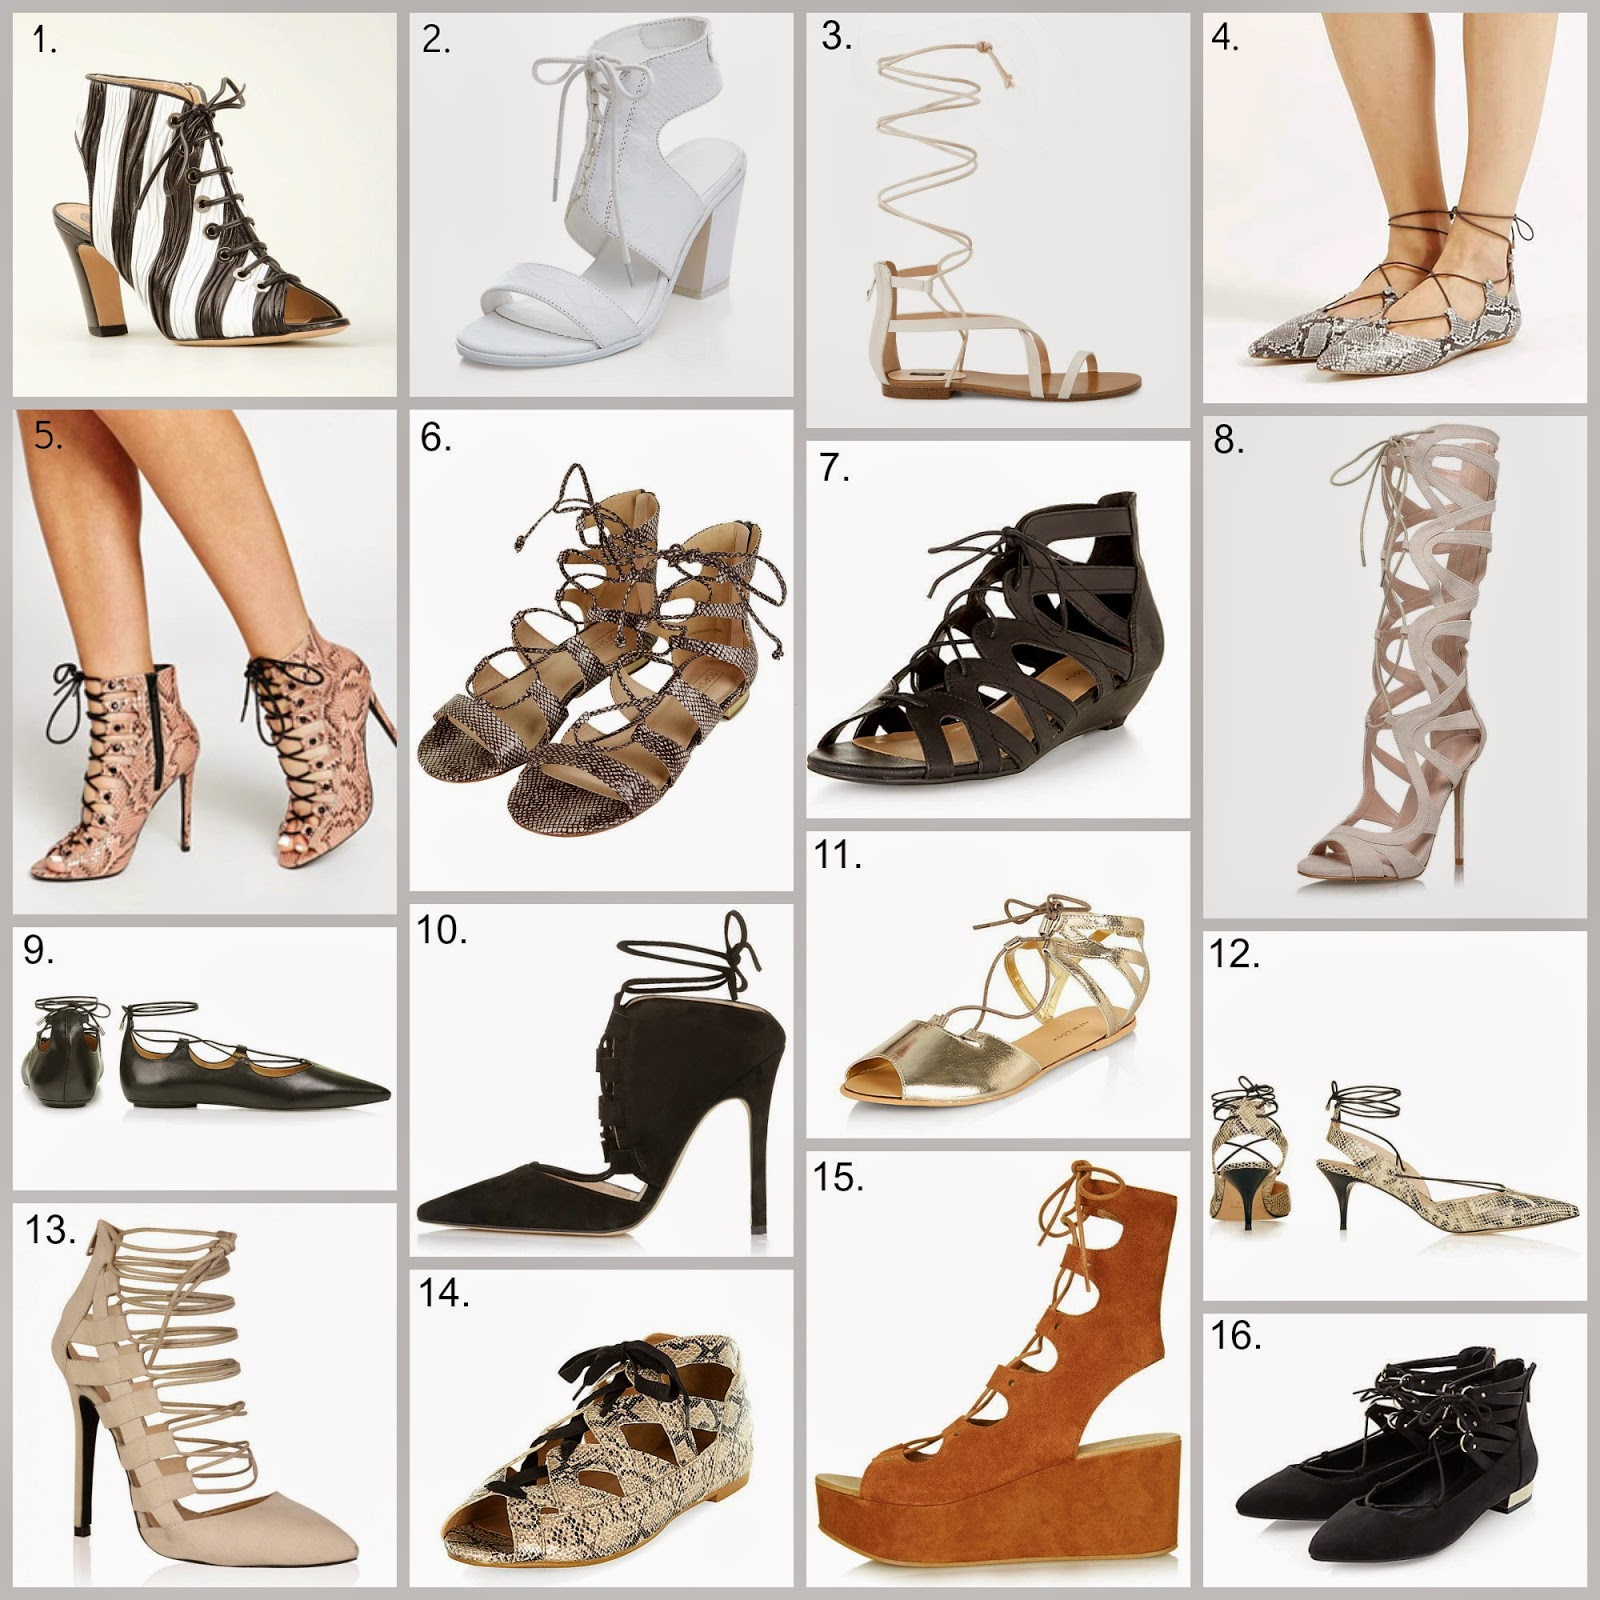 hot new trend - lace up and ghillie shoes available on the highstreet and online in neutral colours